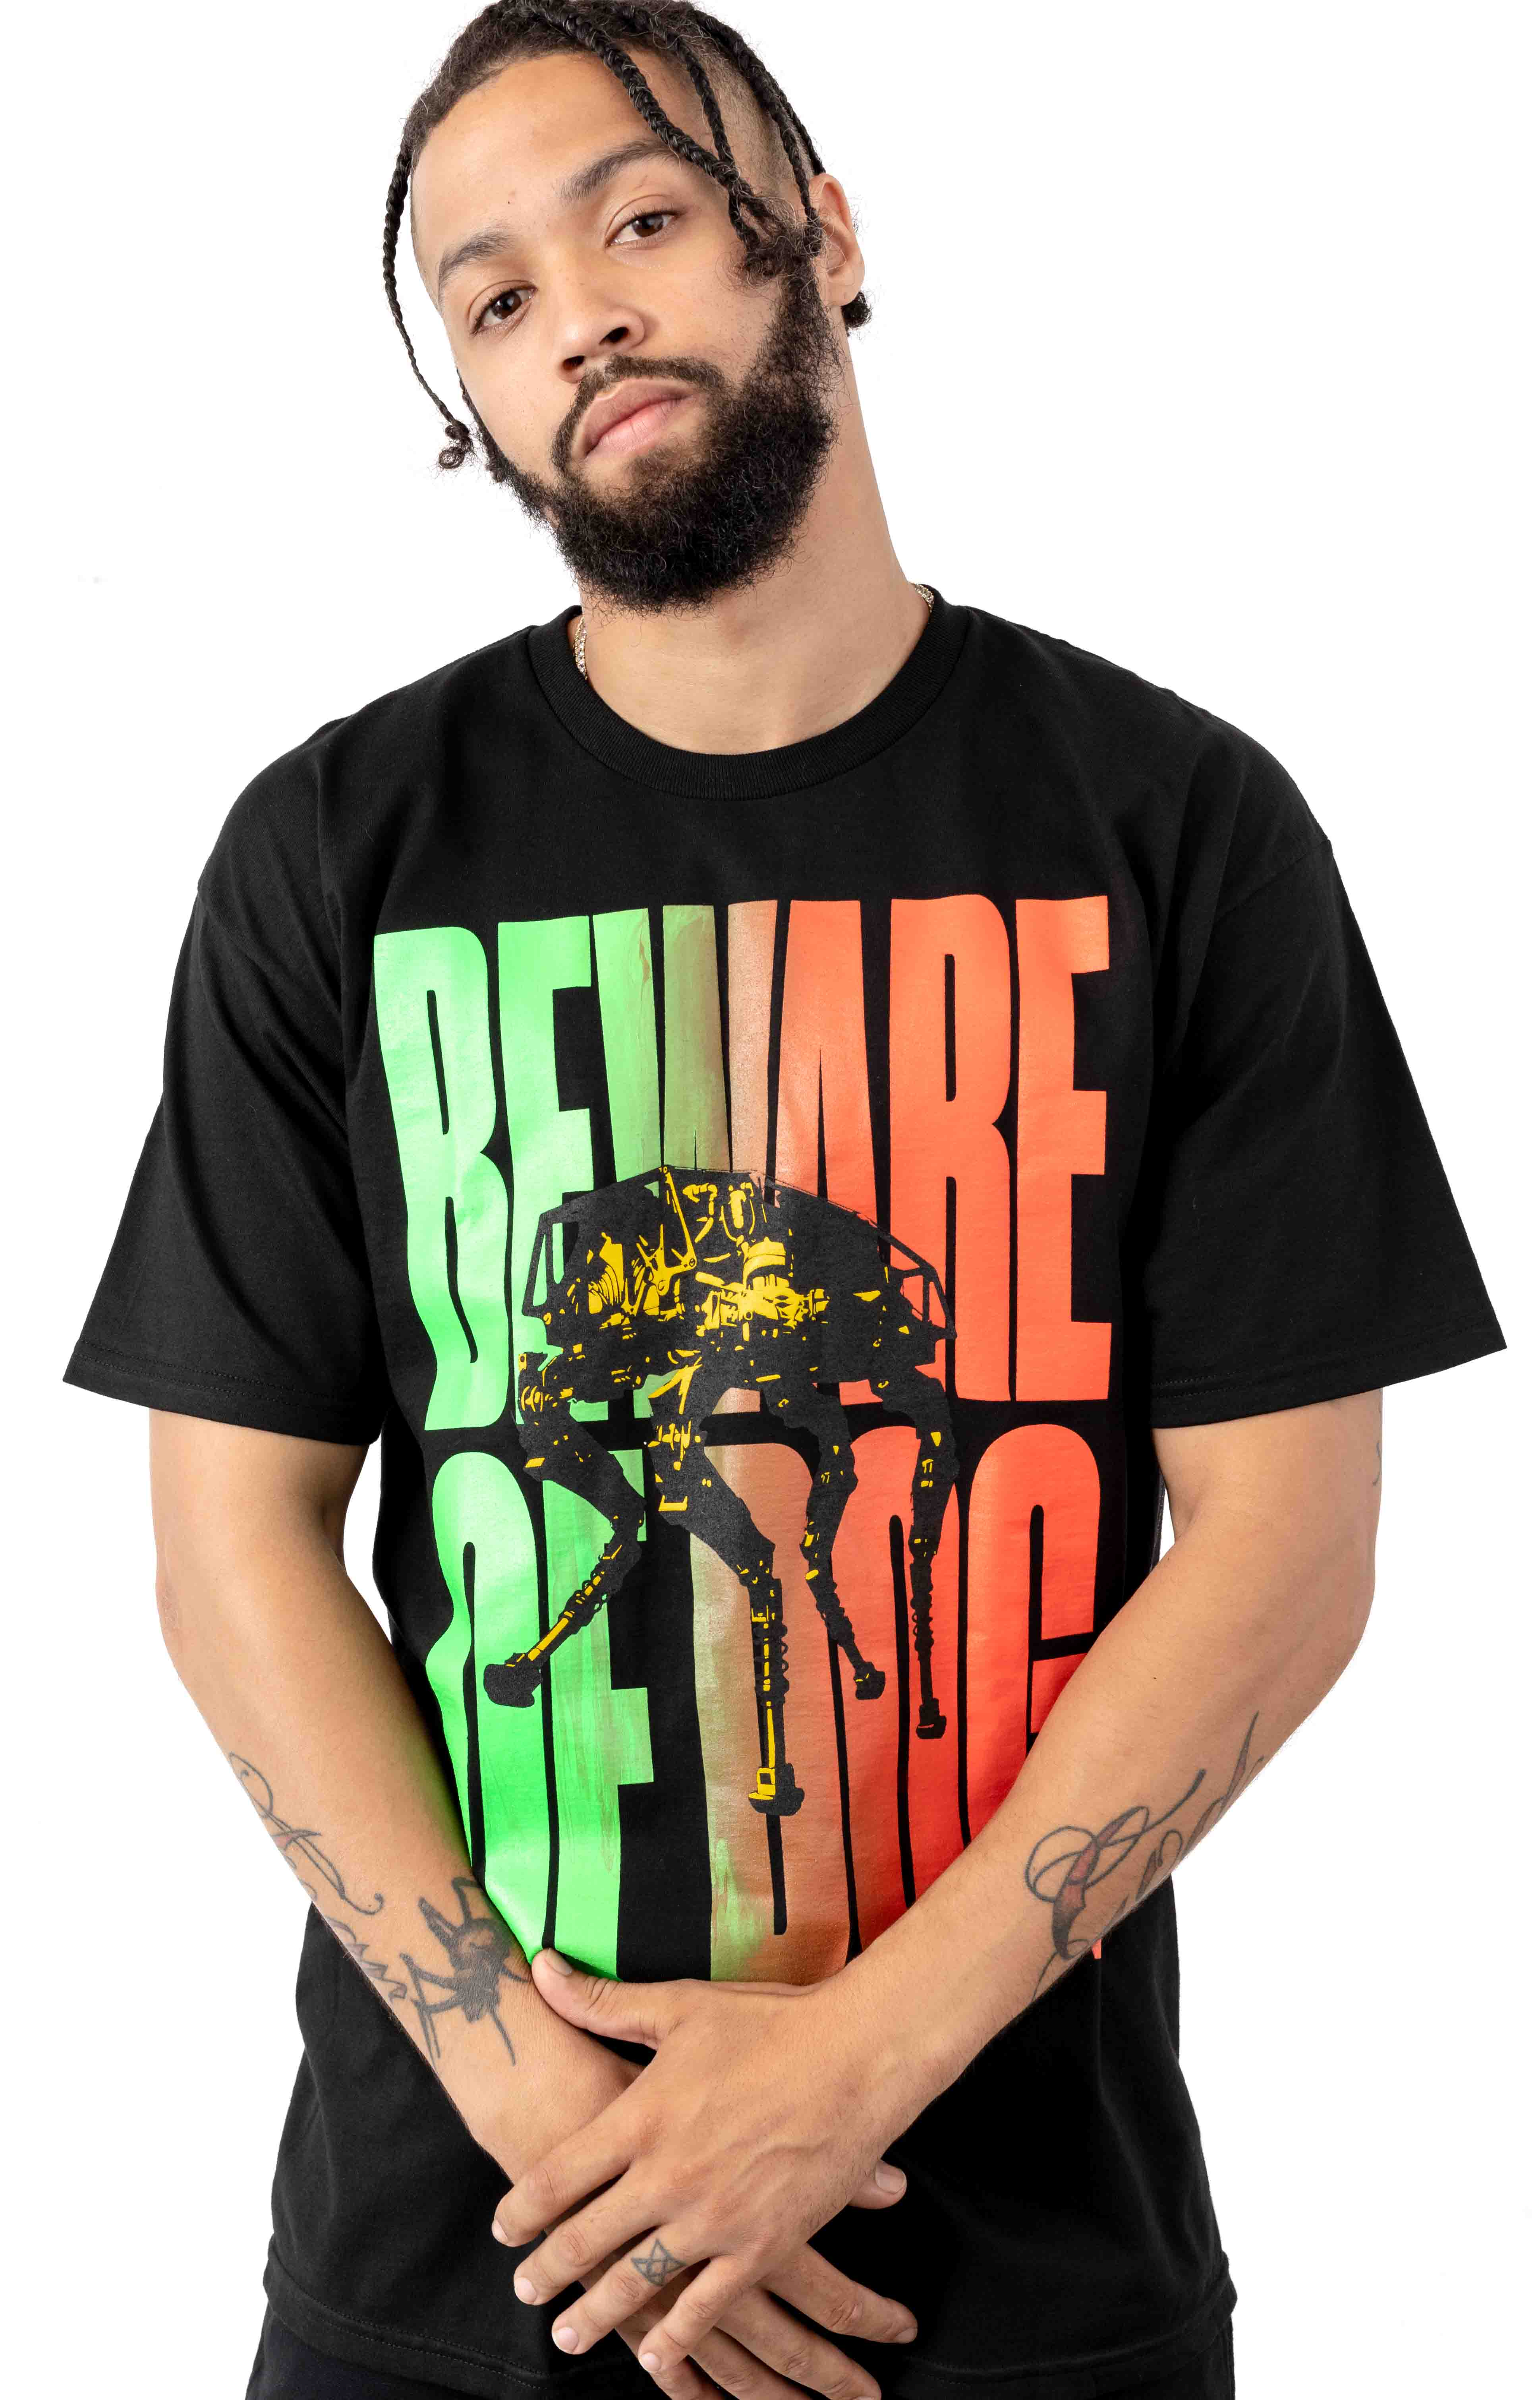 Beware Of Dog T-Shirt - Black